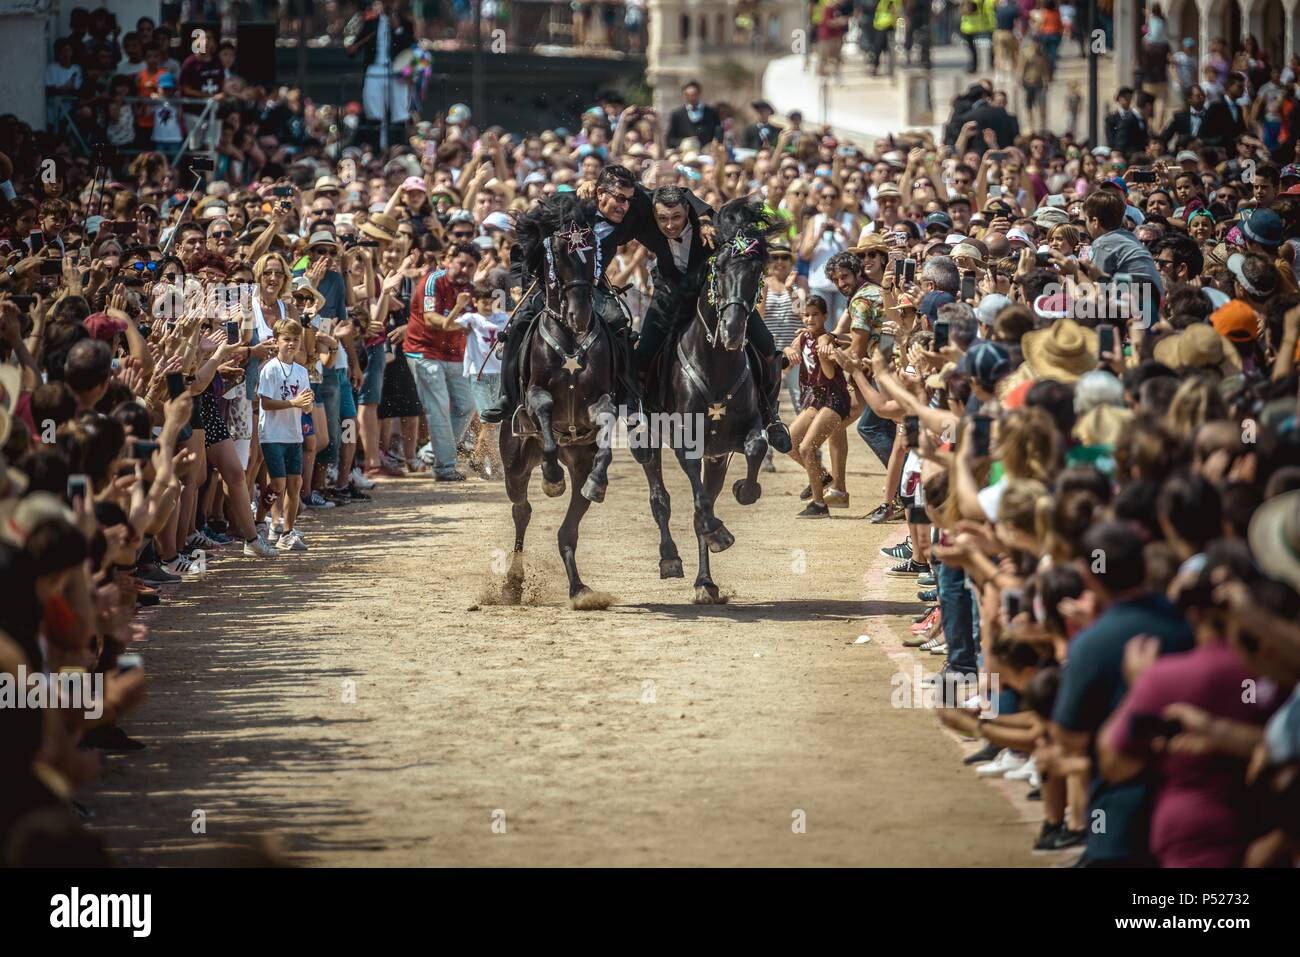 Ciutadella, Spain. 24 June, 2018:  Two 'caixers' (horse riders) gallop together with their arms entwined during the training session for the 'Jocs des Pla' (medieval tournament) during the traditional 'Sant Joan' (Saint John) festival in Ciutadella de Menorca Credit: Matthias Oesterle/Alamy Live News - Stock Image